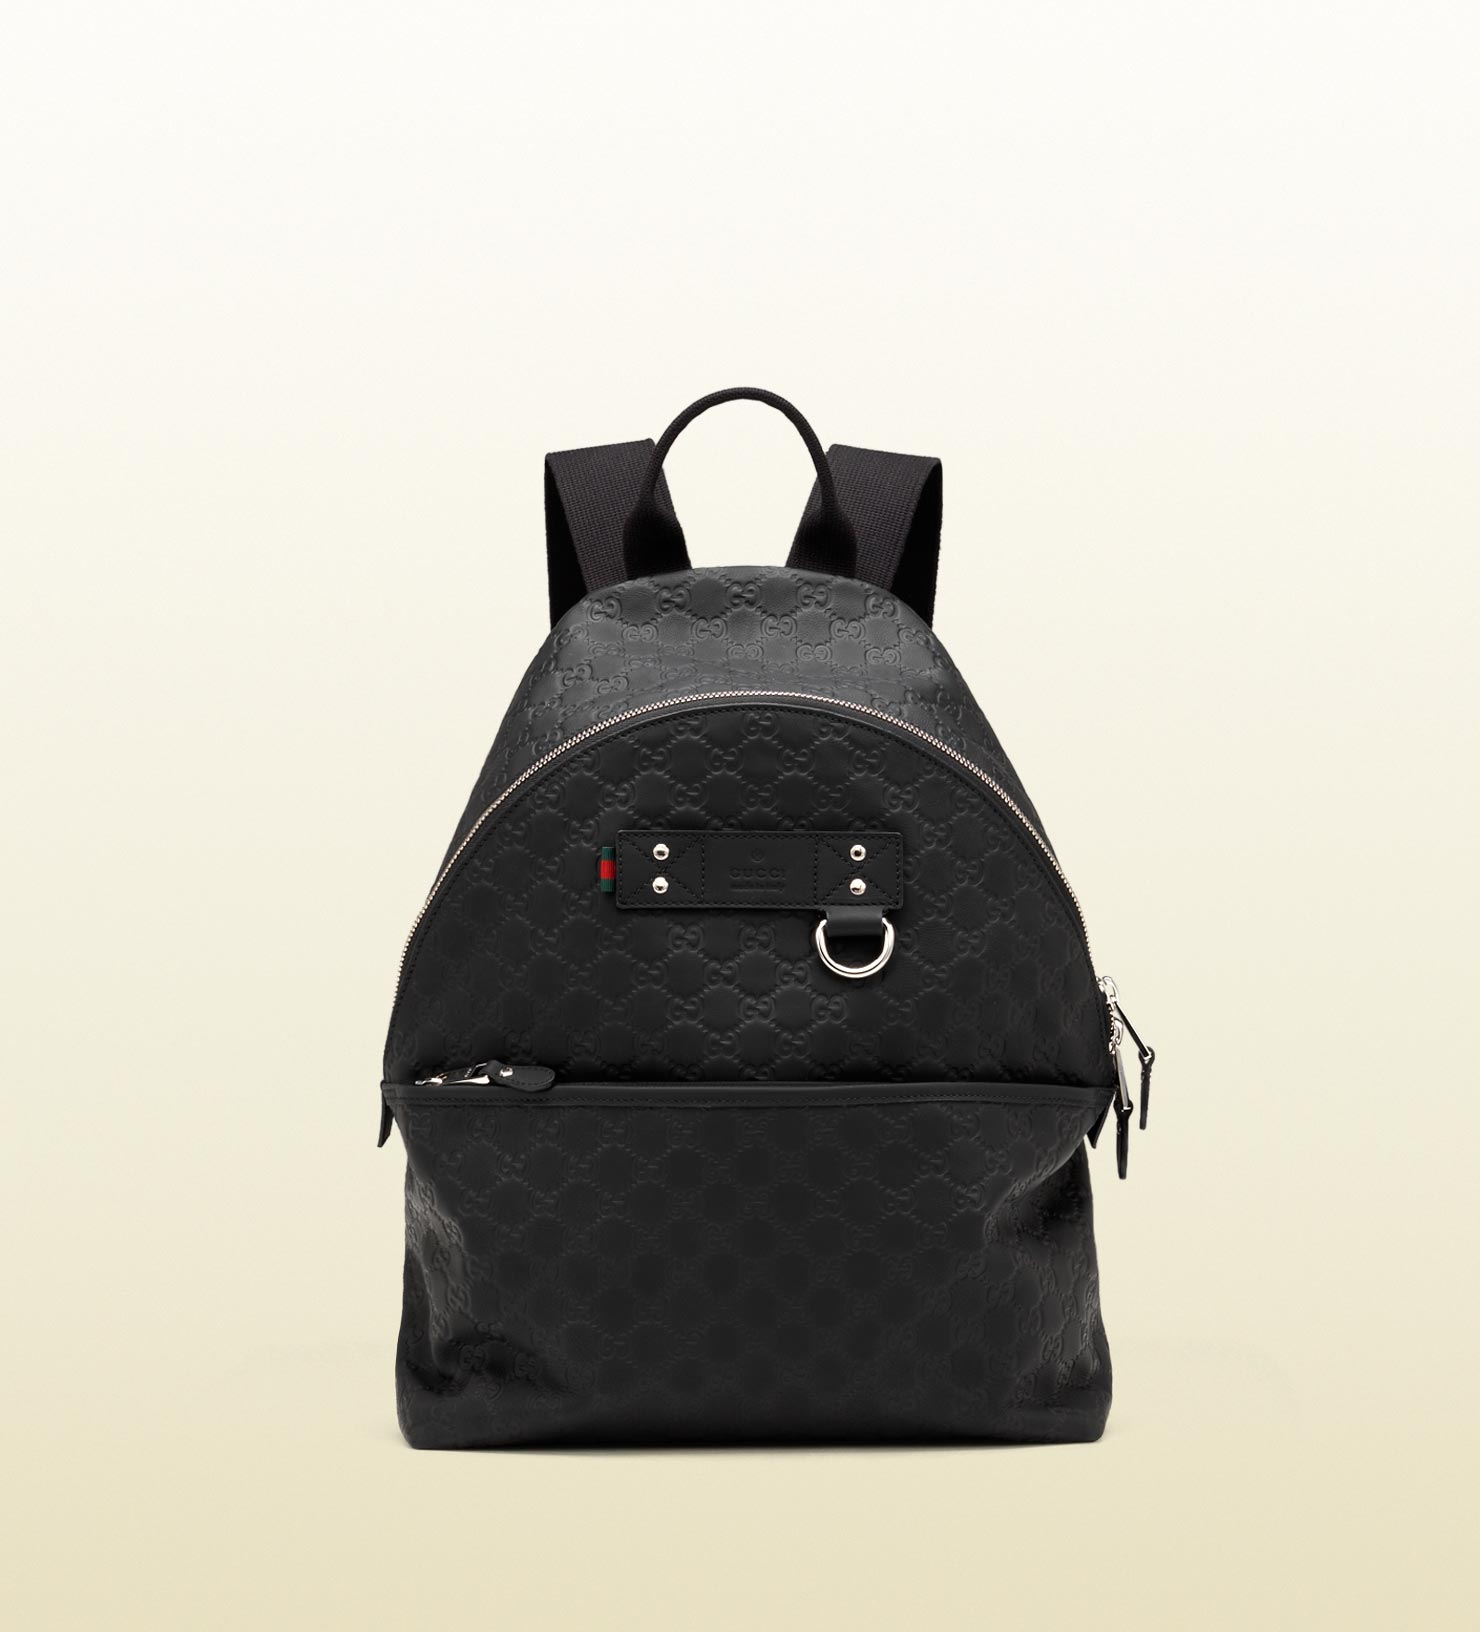 516a81251d2 Gucci Black Rubber Ssima Leather Backpack in Black for Men - Lyst